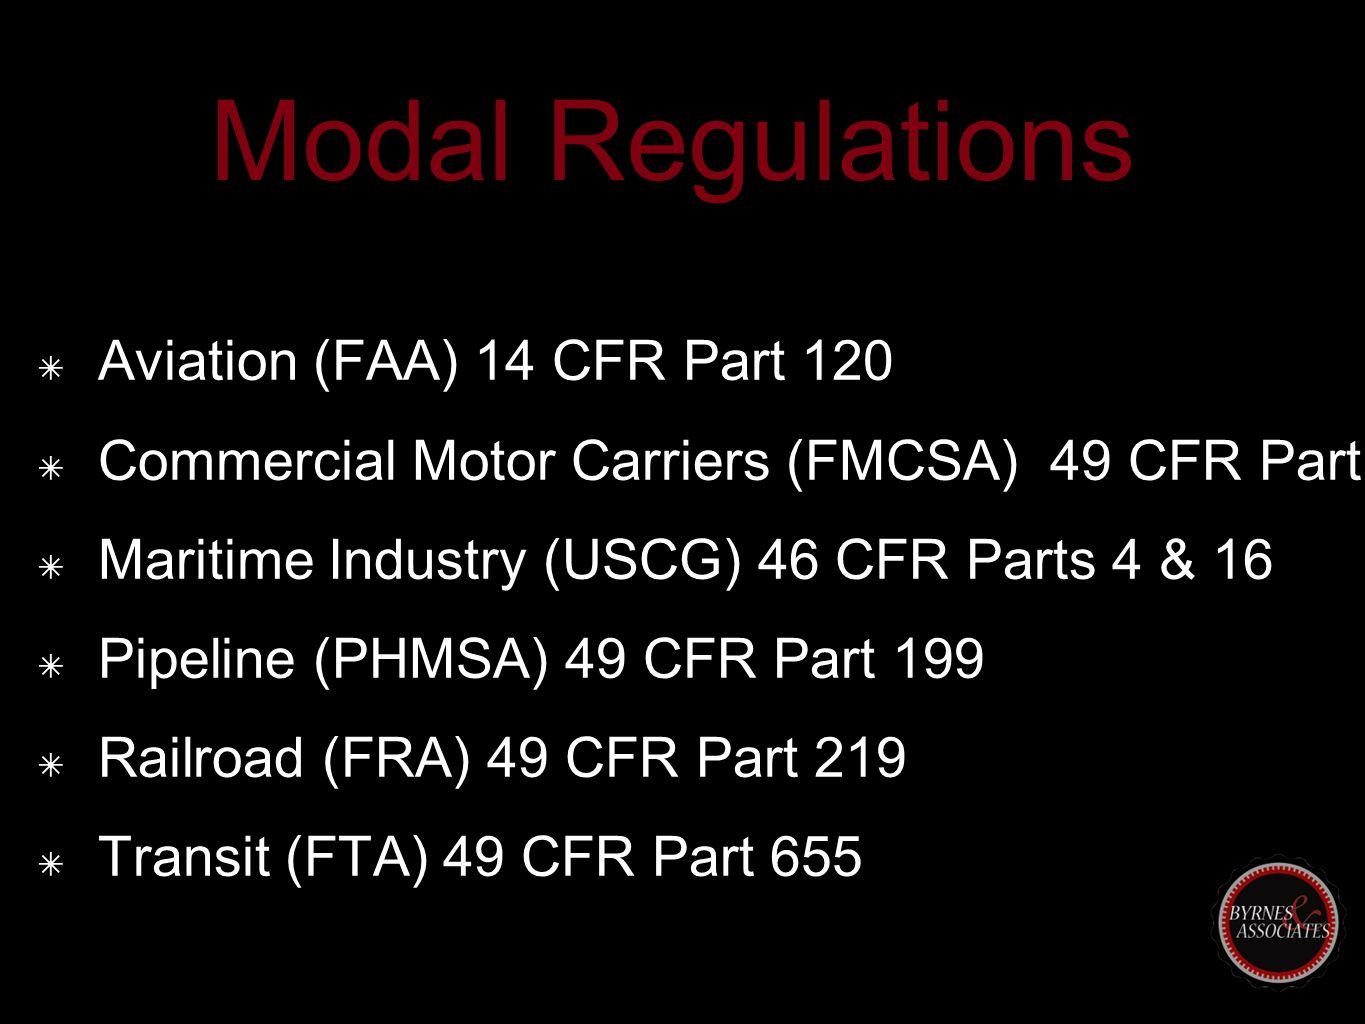 Modal Regulations ✴ Aviation (FAA) 14 CFR Part 120 ✴ Commercial Motor Carriers (FMCSA) 49 CFR Part 382 ✴ Maritime Industry (USCG) 46 CFR Parts 4 & 16